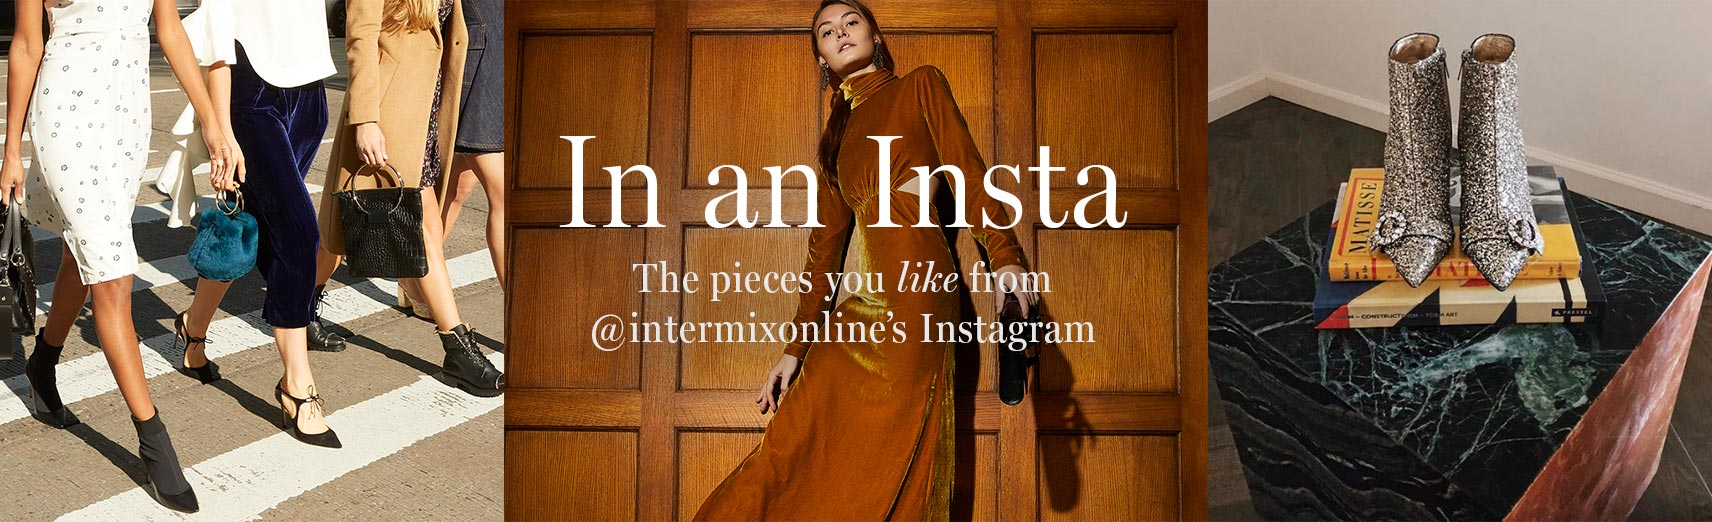 In an Insta: The pieces you like from @intermixonline's Instagram